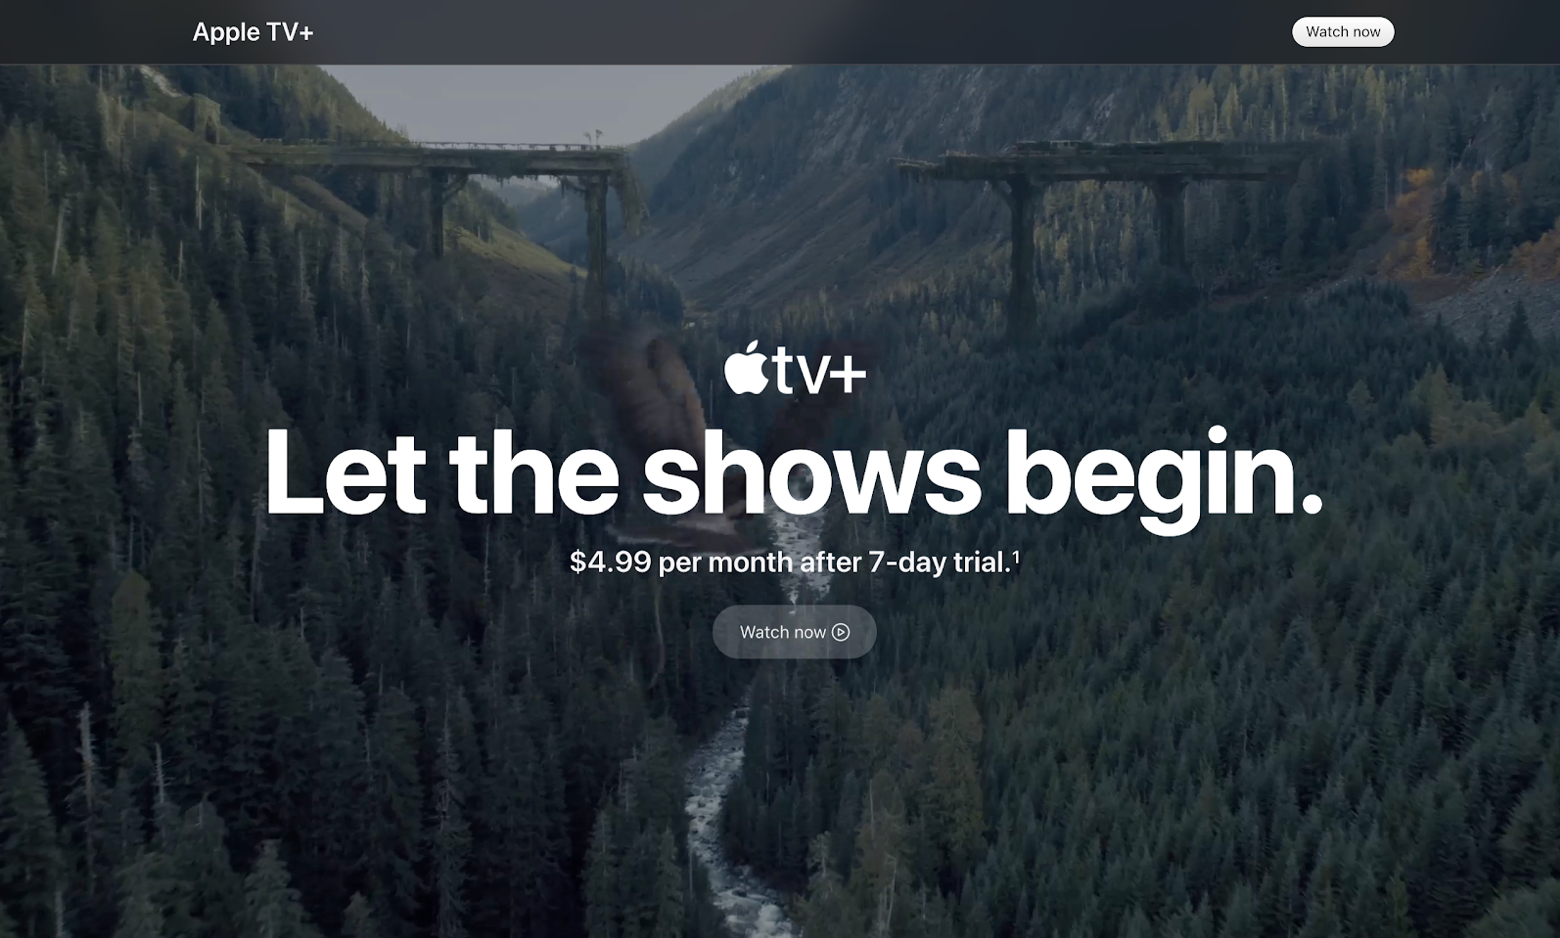 Give Apple TV+ subscription as a gift